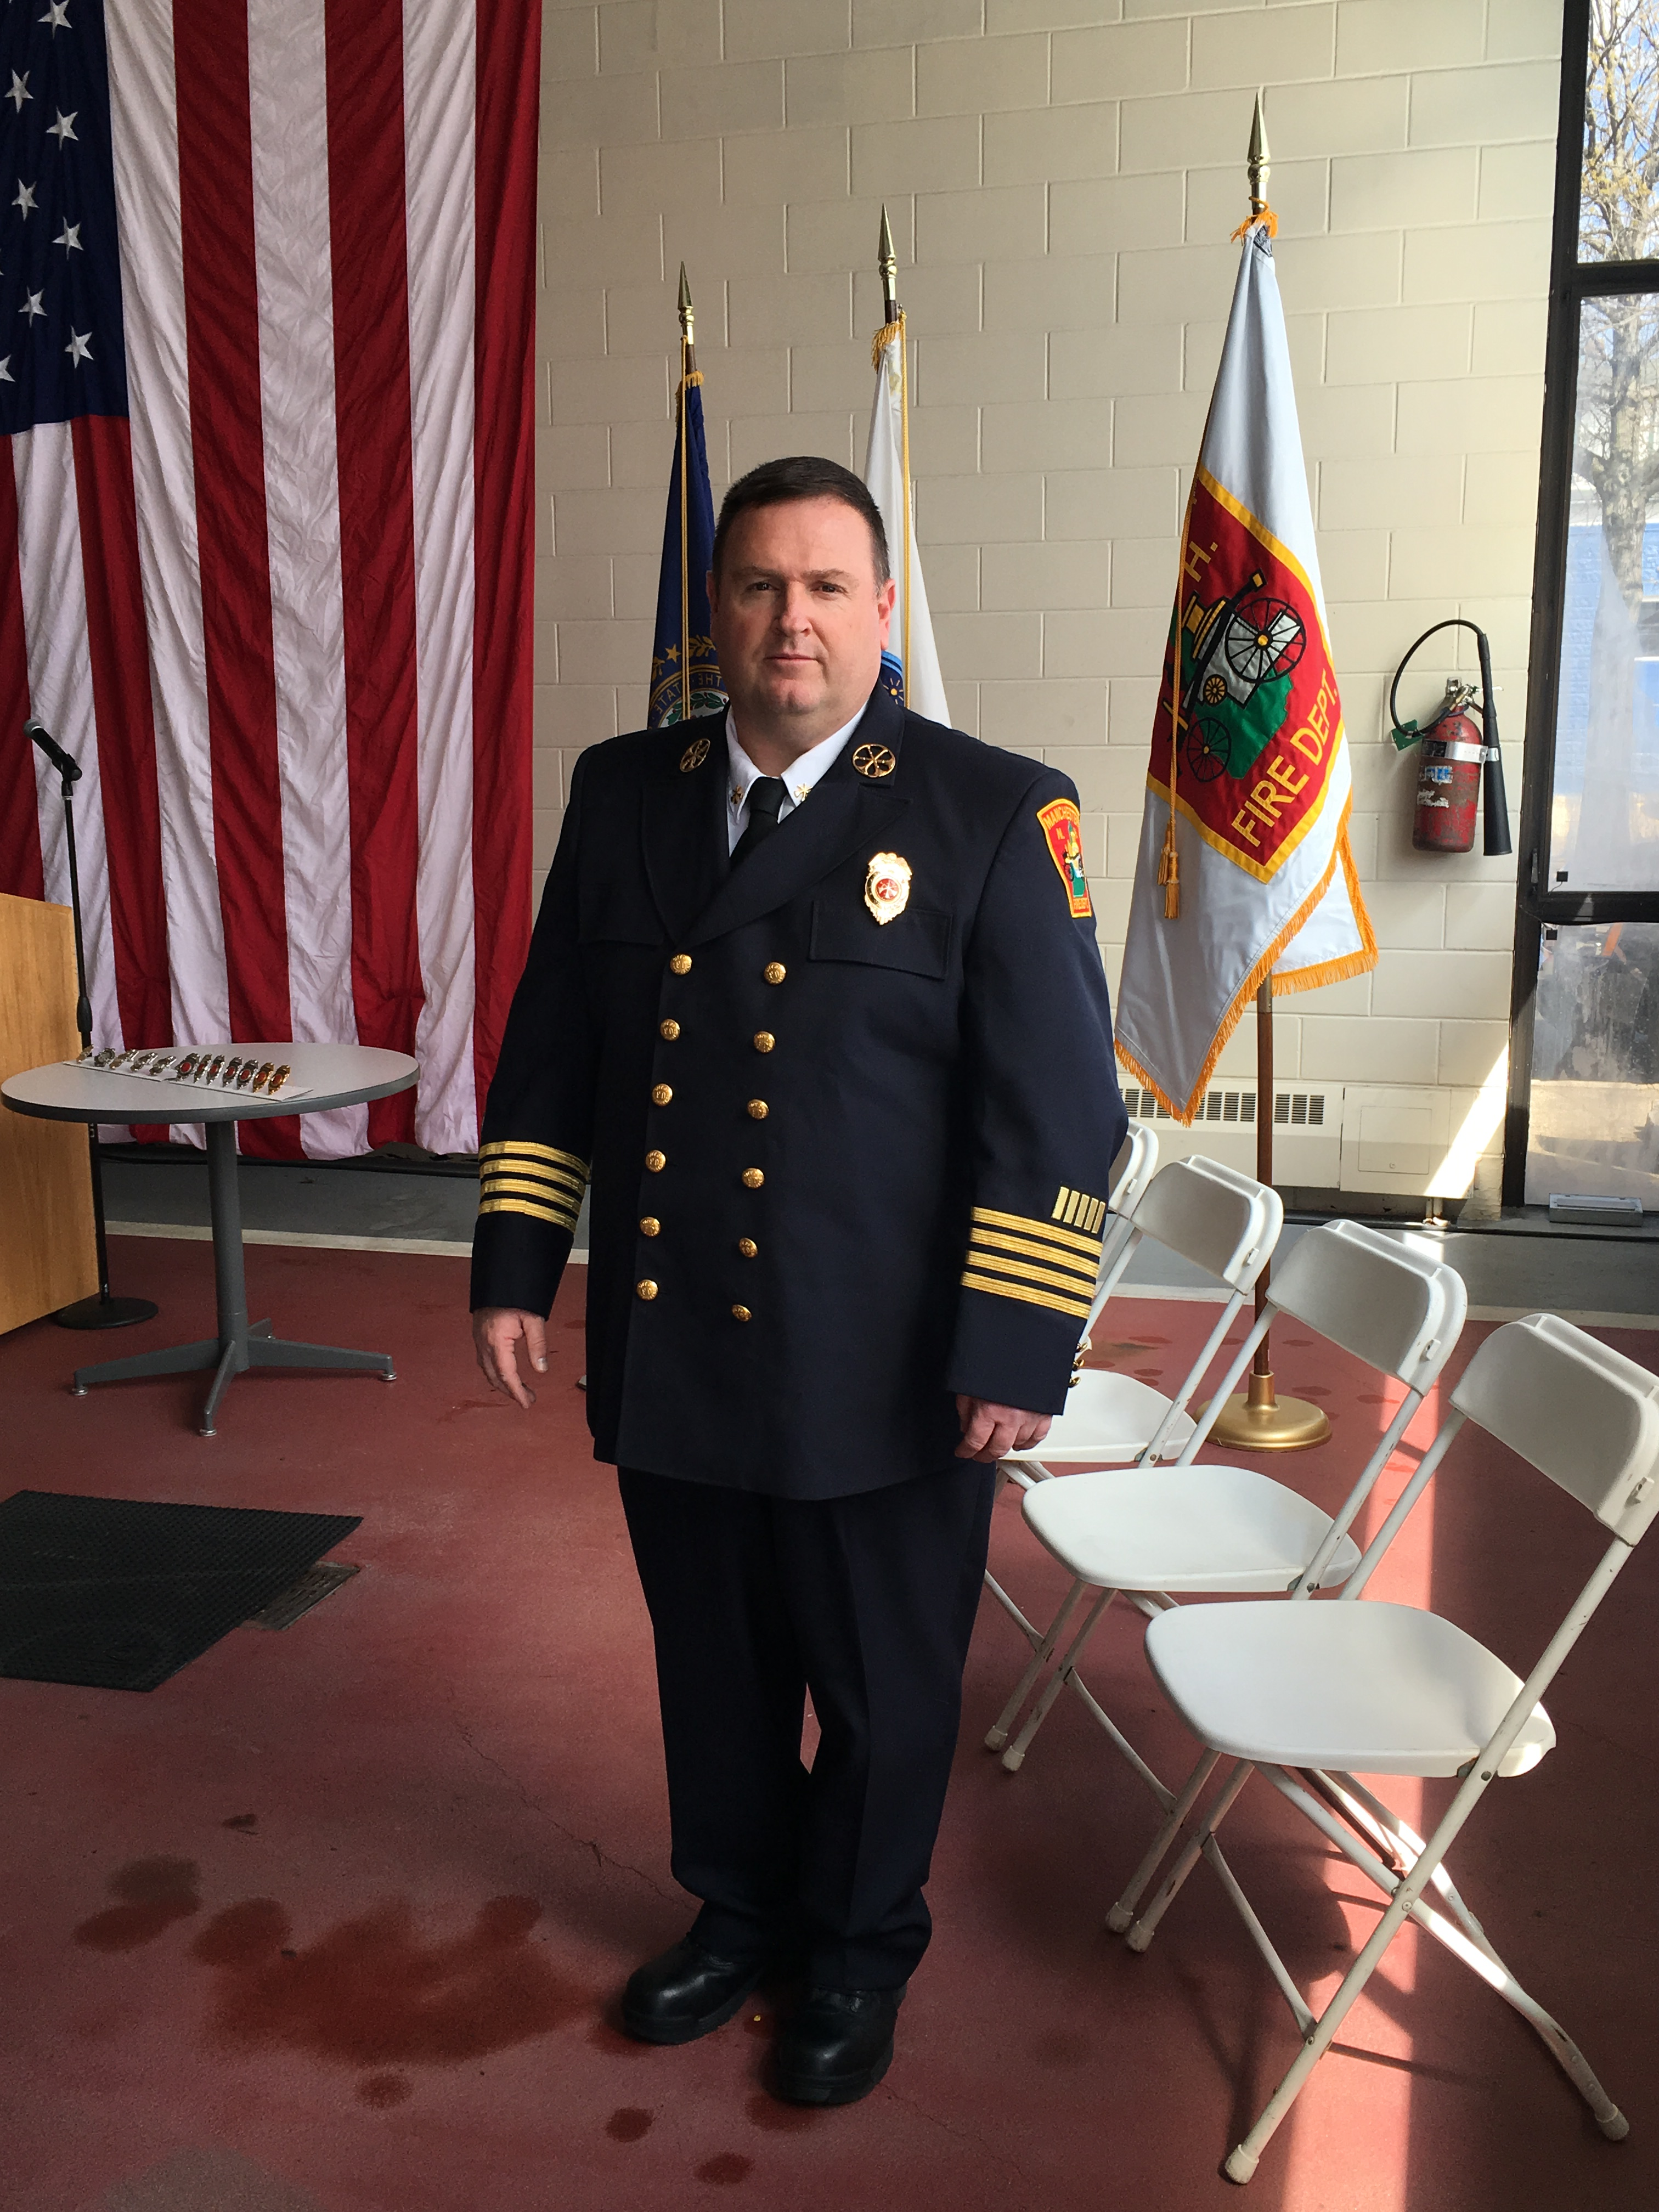 Deputy Chief Richard McGahey